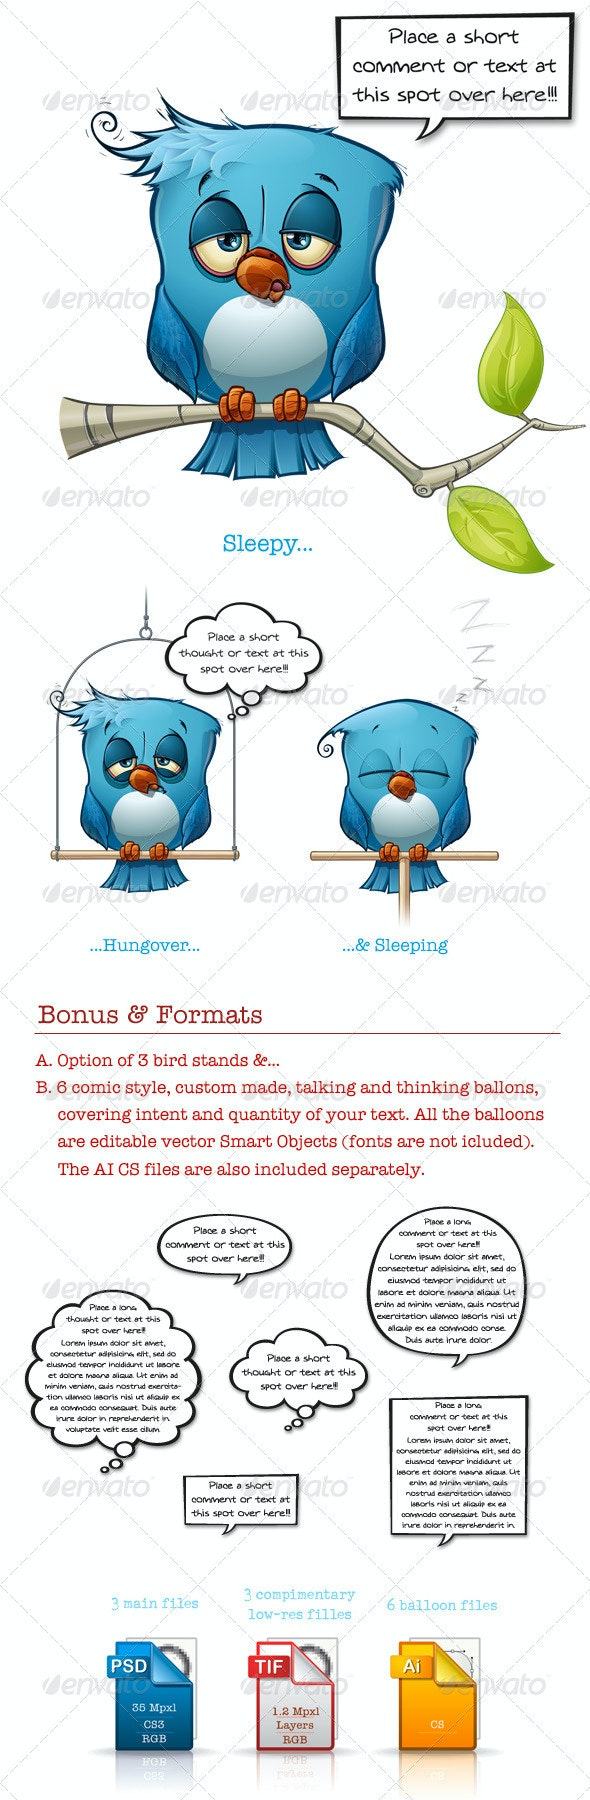 Blue Bird Sleepy-Hangover-Sleeping - Animals Illustrations